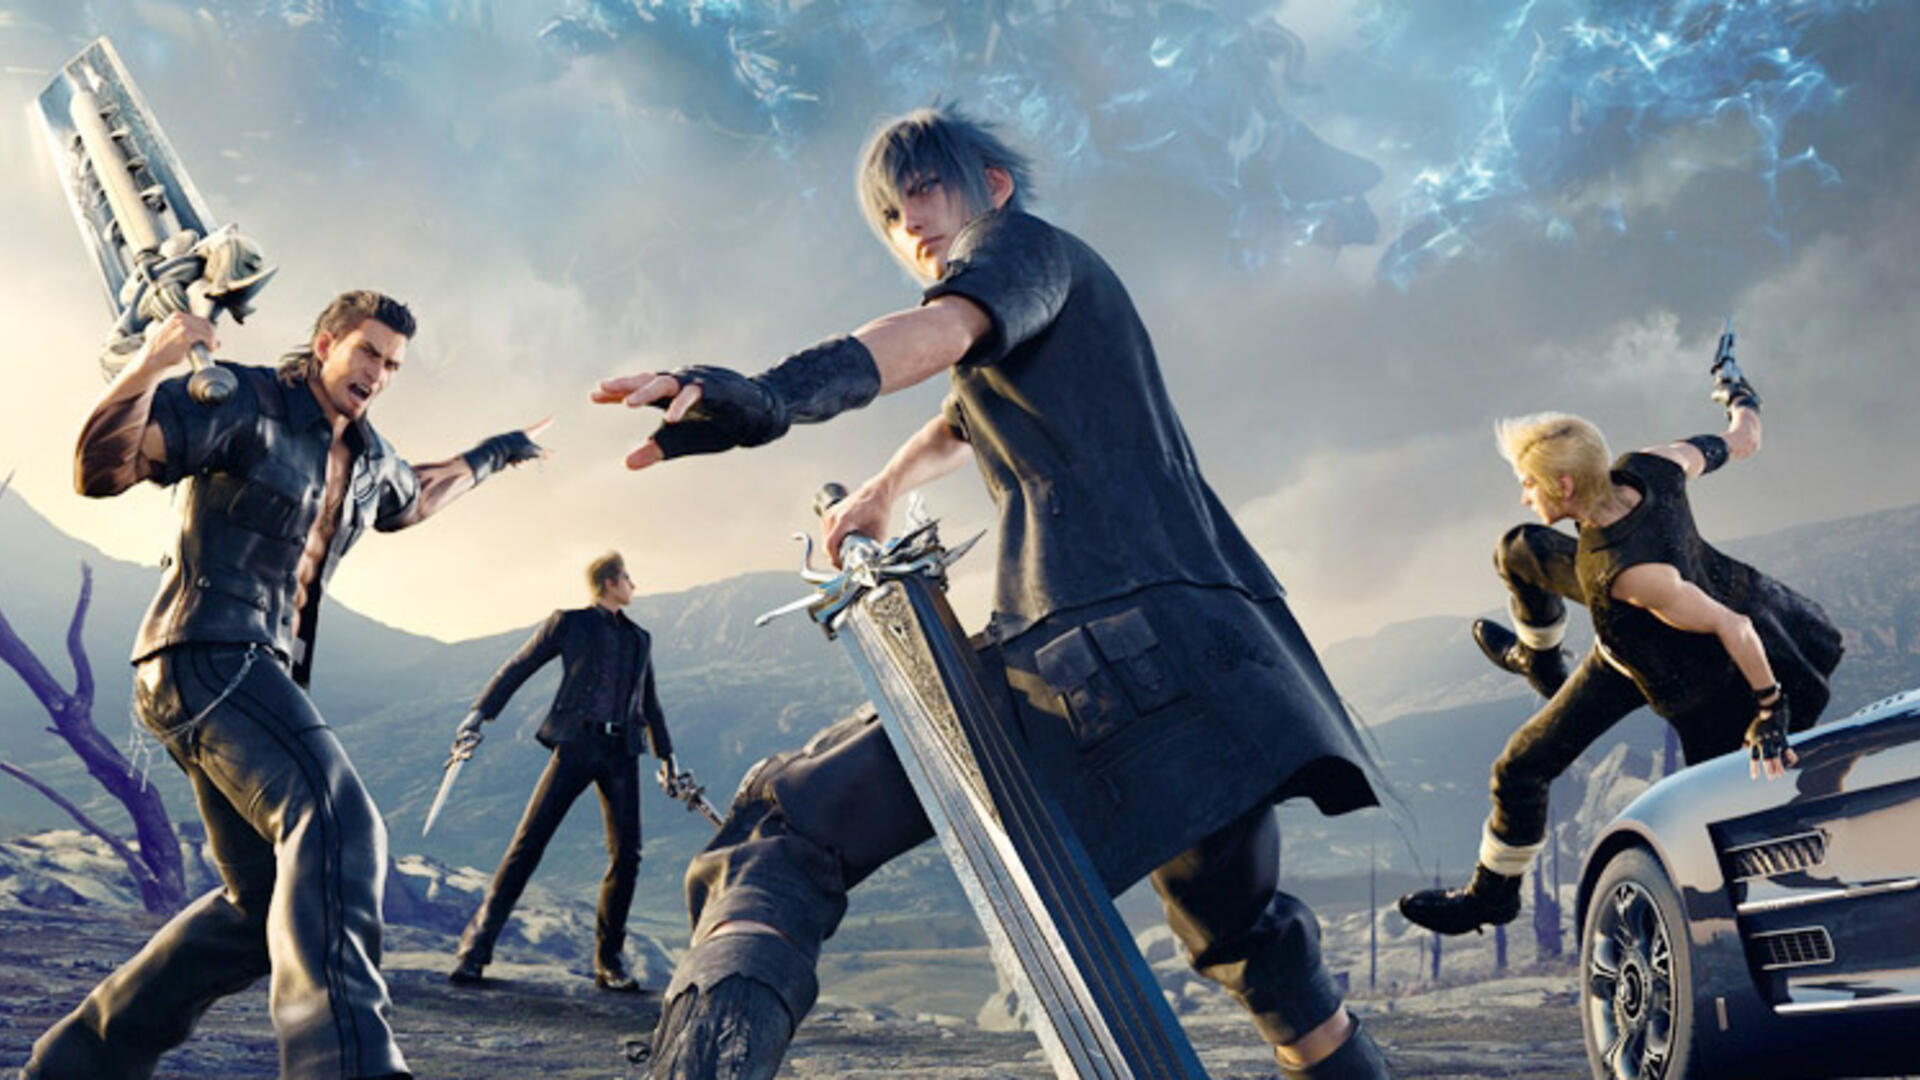 Check Out the New Story Scene From Final Fantasy XV Royal Edition